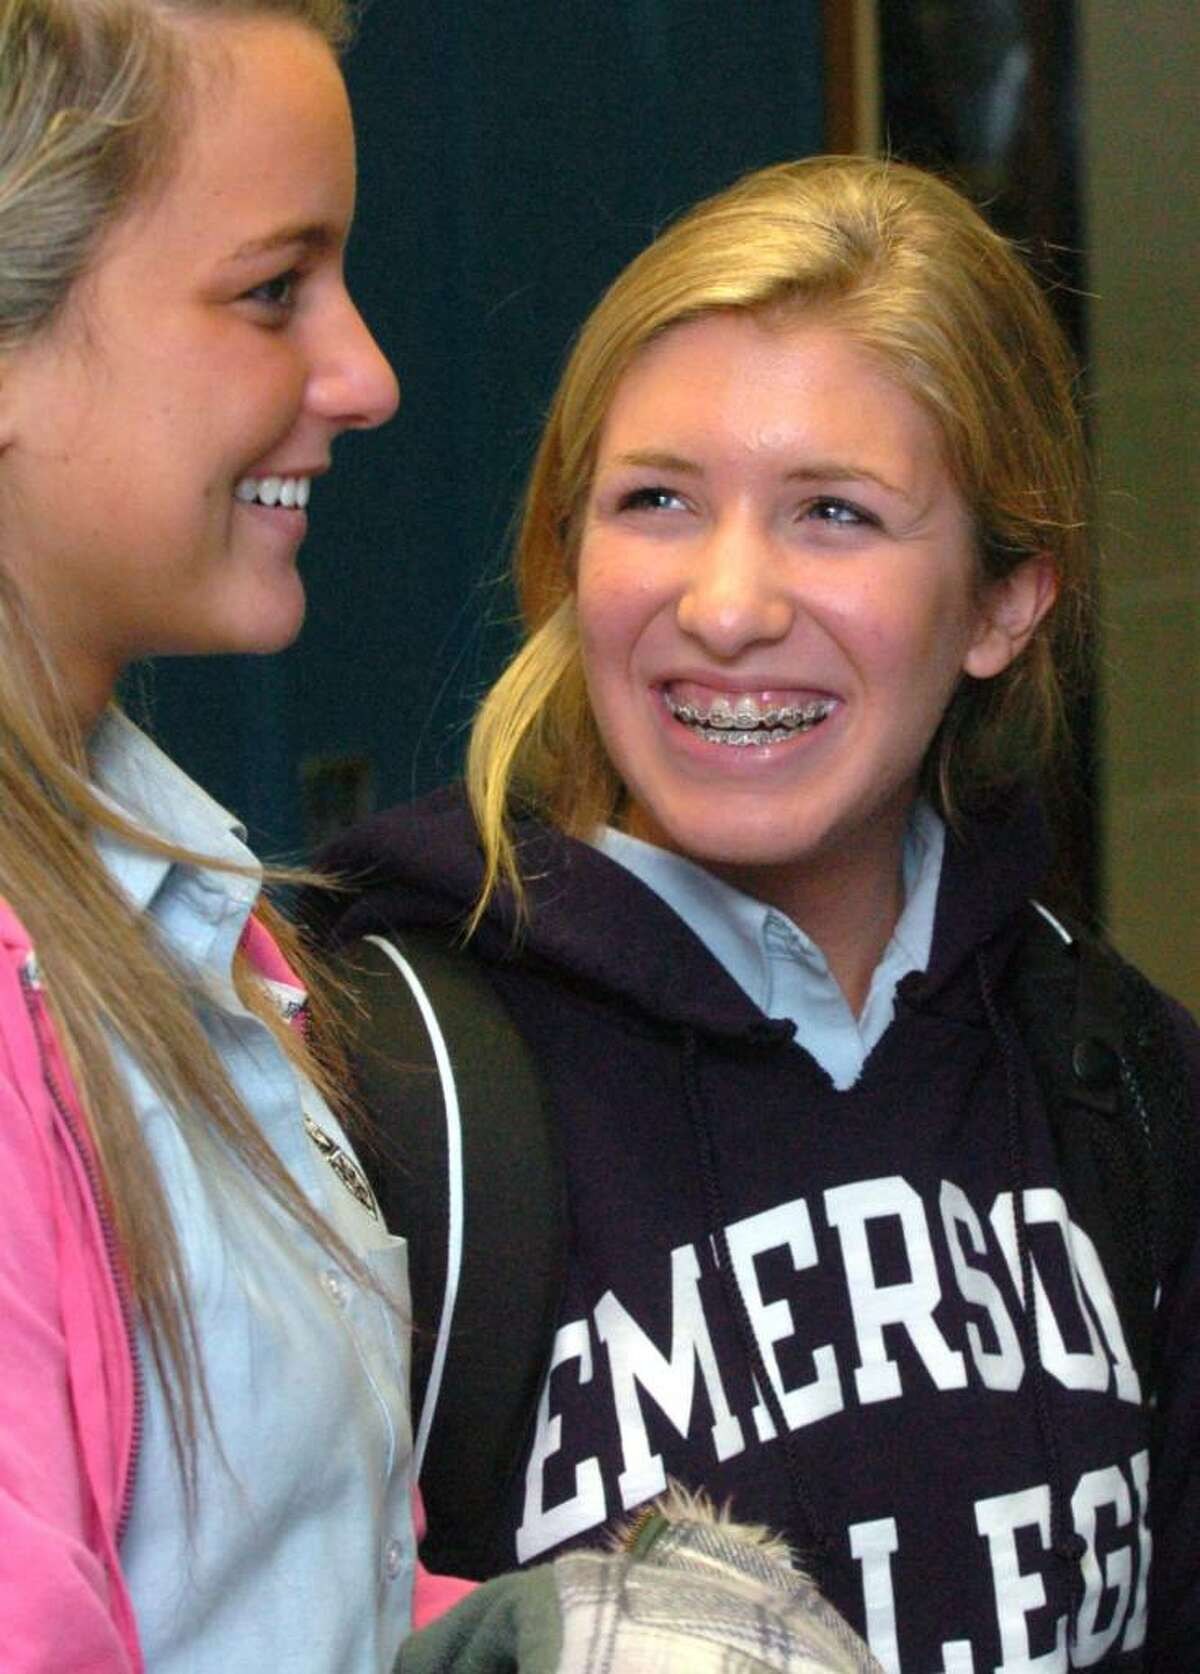 From right, Megan Mitchell, 17, chats with Melinda Corso, 18, after school at Immaculate High, Tuesday, Nov. 10, 2009.